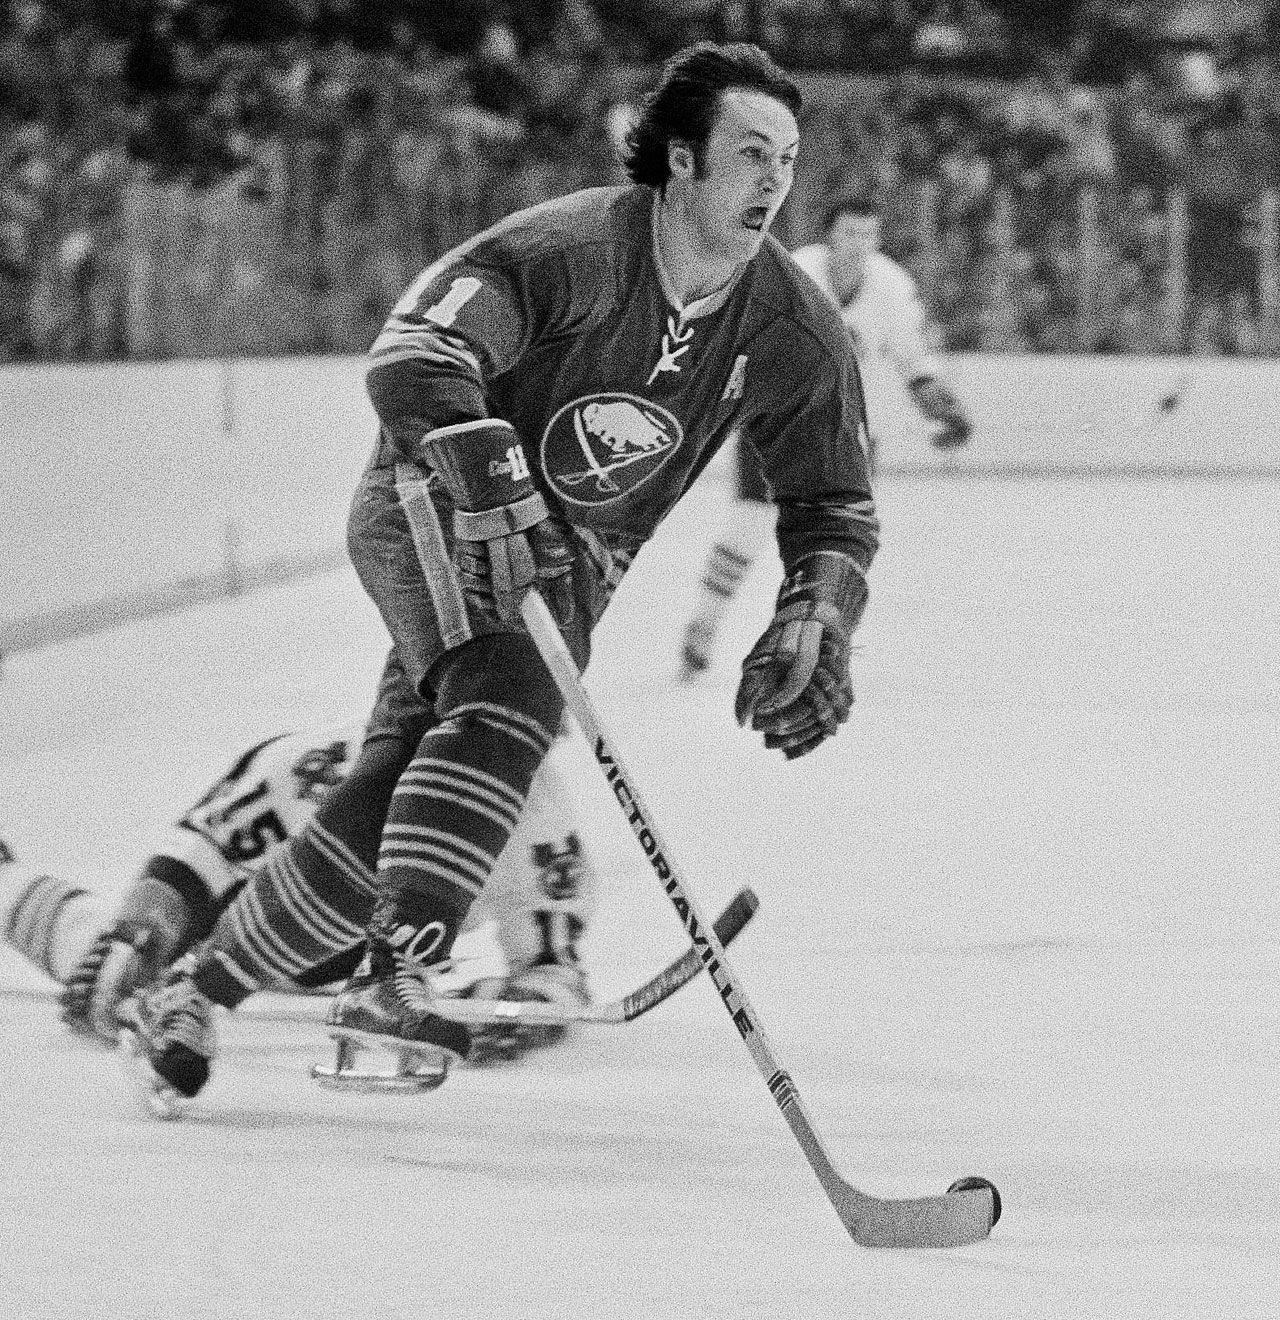 Buffalo Sabres' Gil Perreault (11) | Sports | Hockey, Nhl players